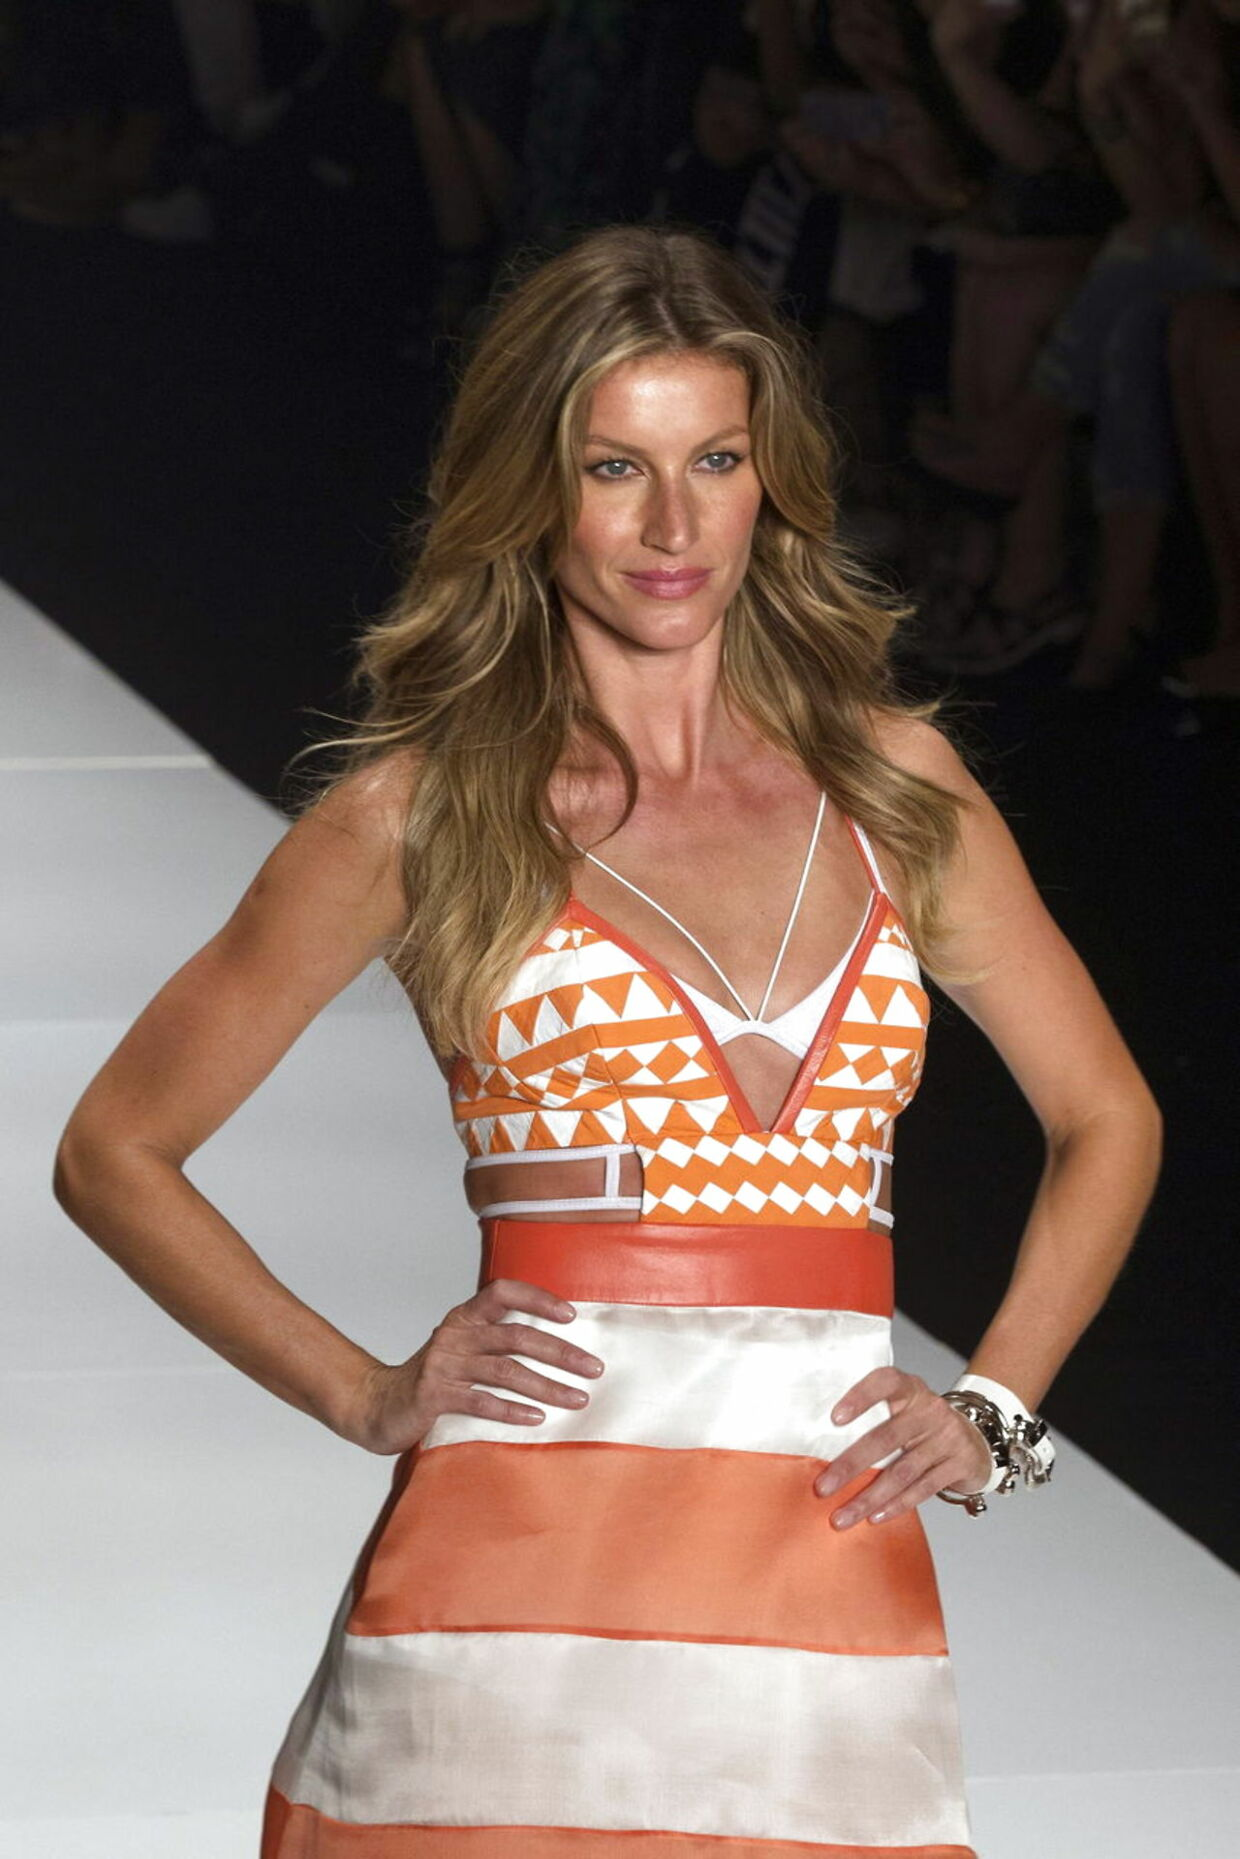 epa04706486 Brazilian model Gisele Bundchen presents a creation by fashion brand Colcci during the Sao Paulo Fashion Week Summer 2016 at the Candido Portinari Park, in Sao Paulo, Brazil, 15 April 2015. Buendchen, 34, announced her retirement from the runway after the Sao Paulo Fashion Week. EPA/SEBASTIAO MOREIRA